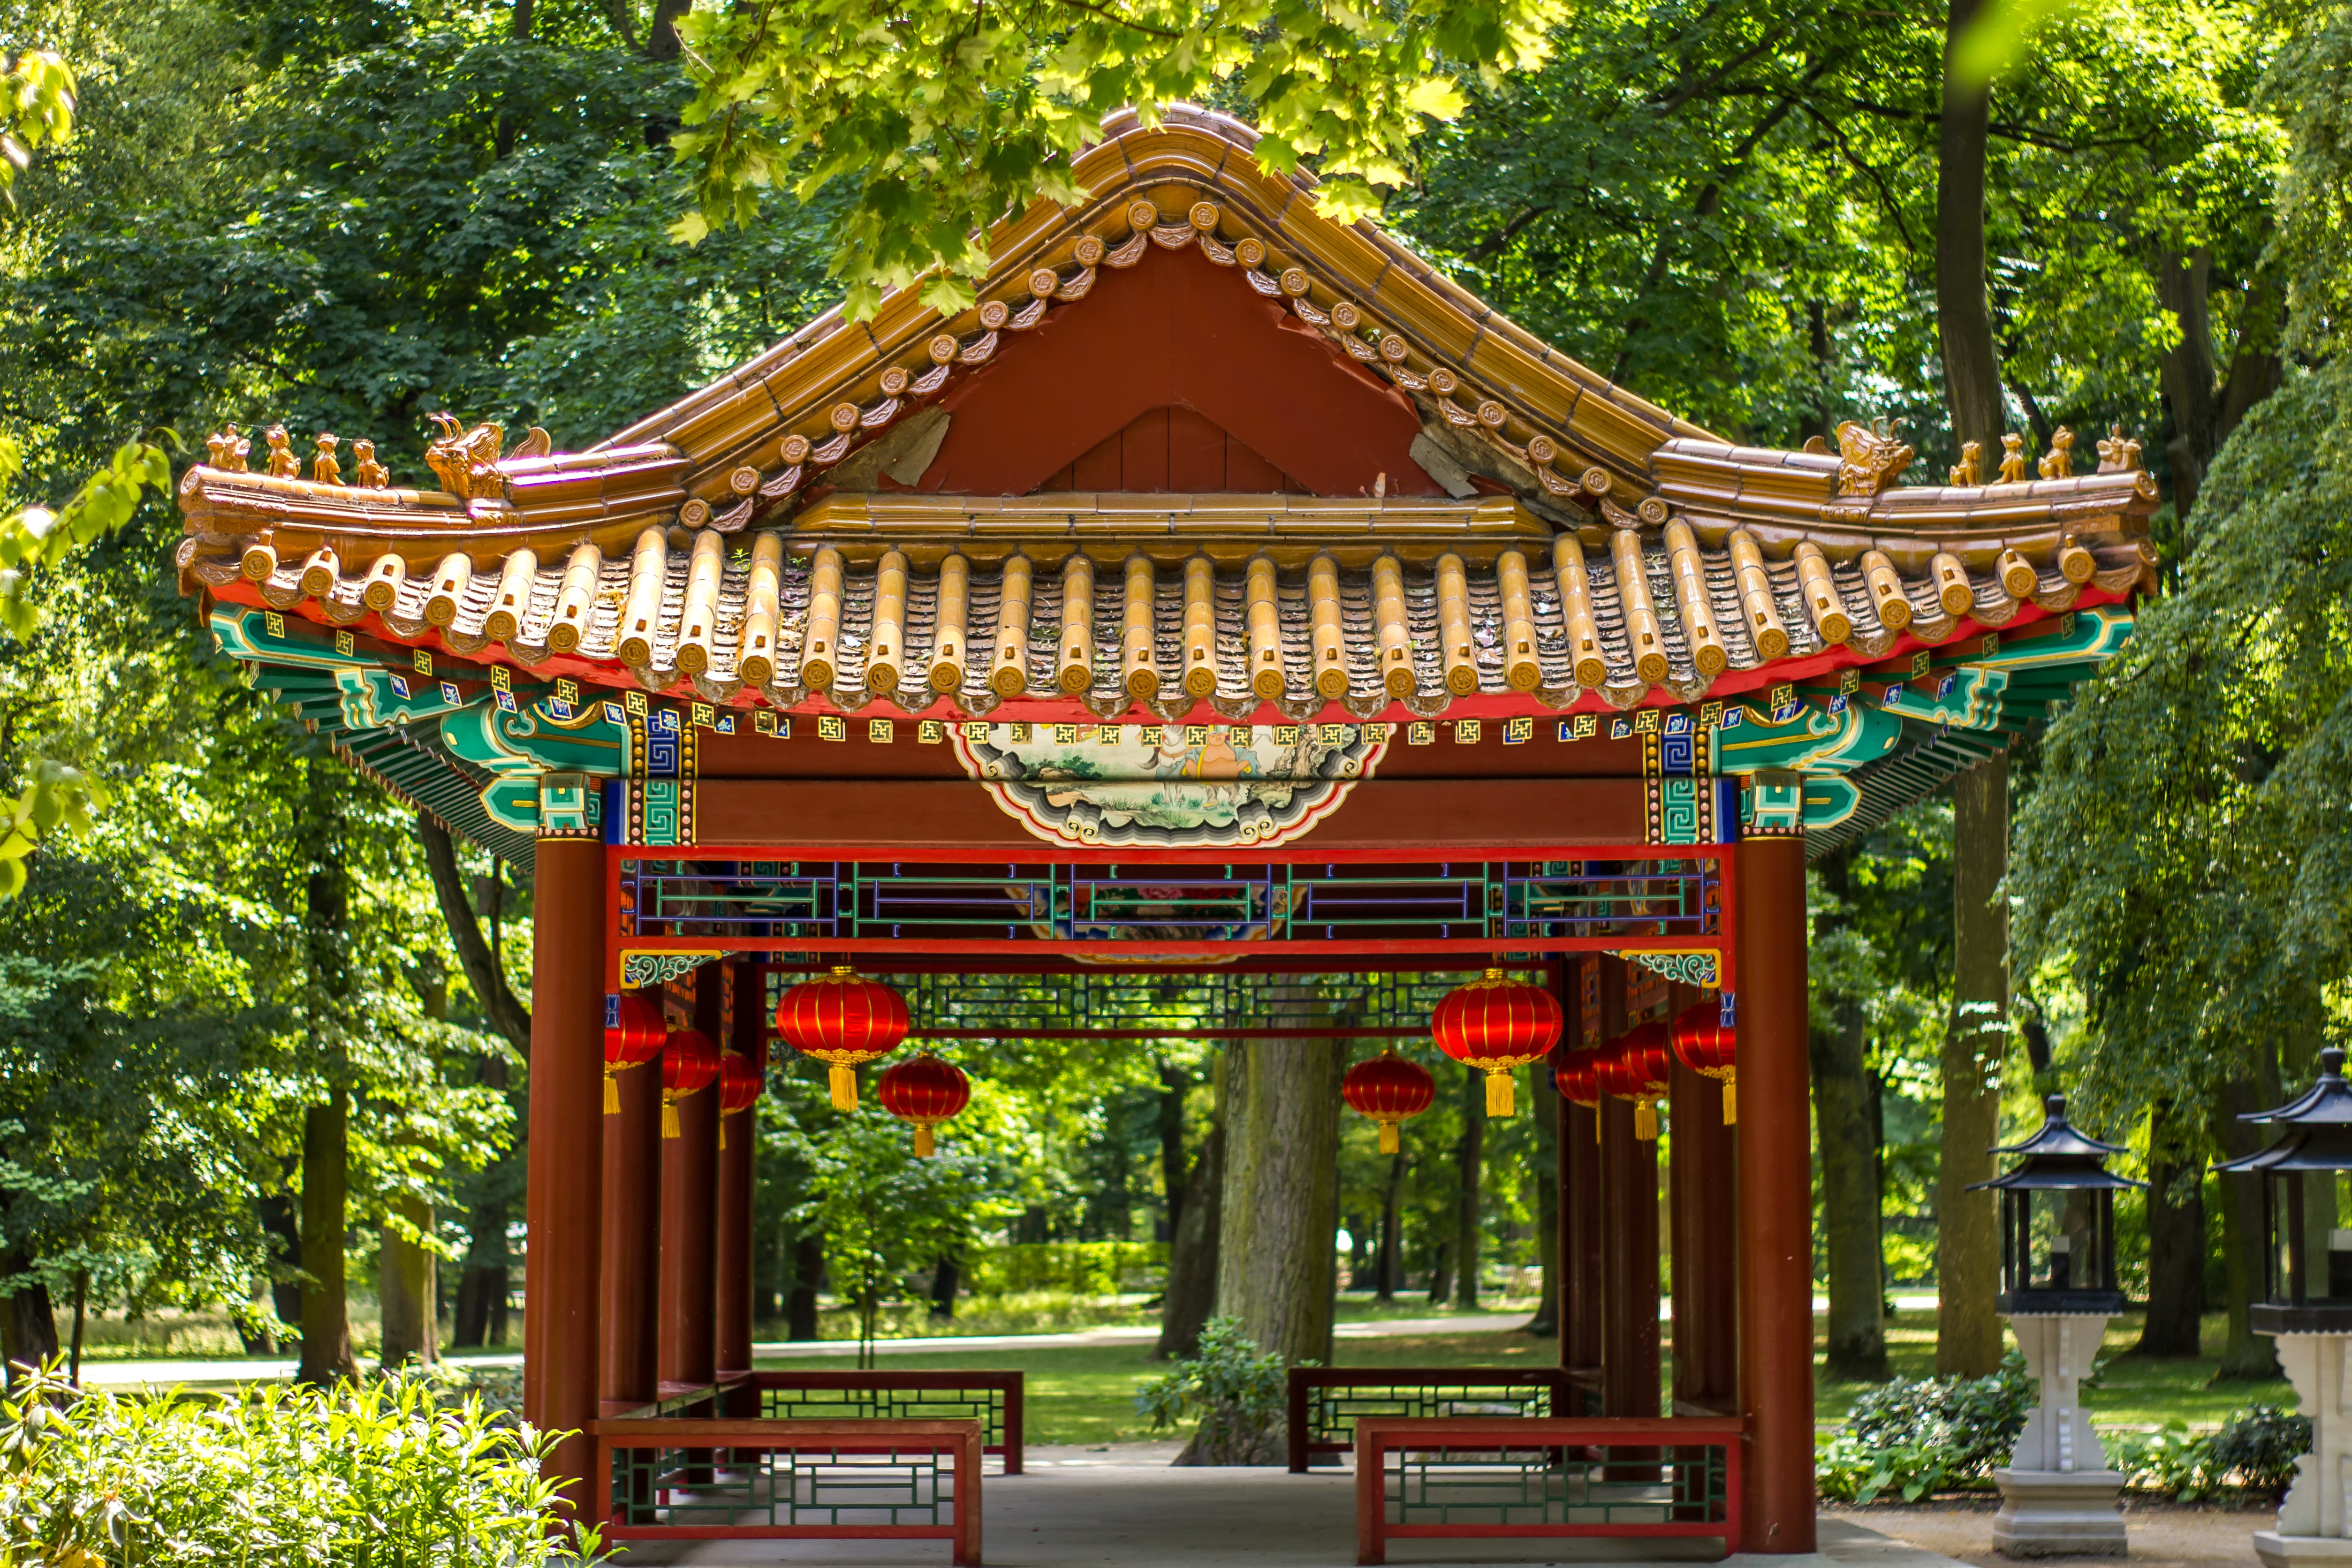 photo of red gazebo surrounded by green leafed trees